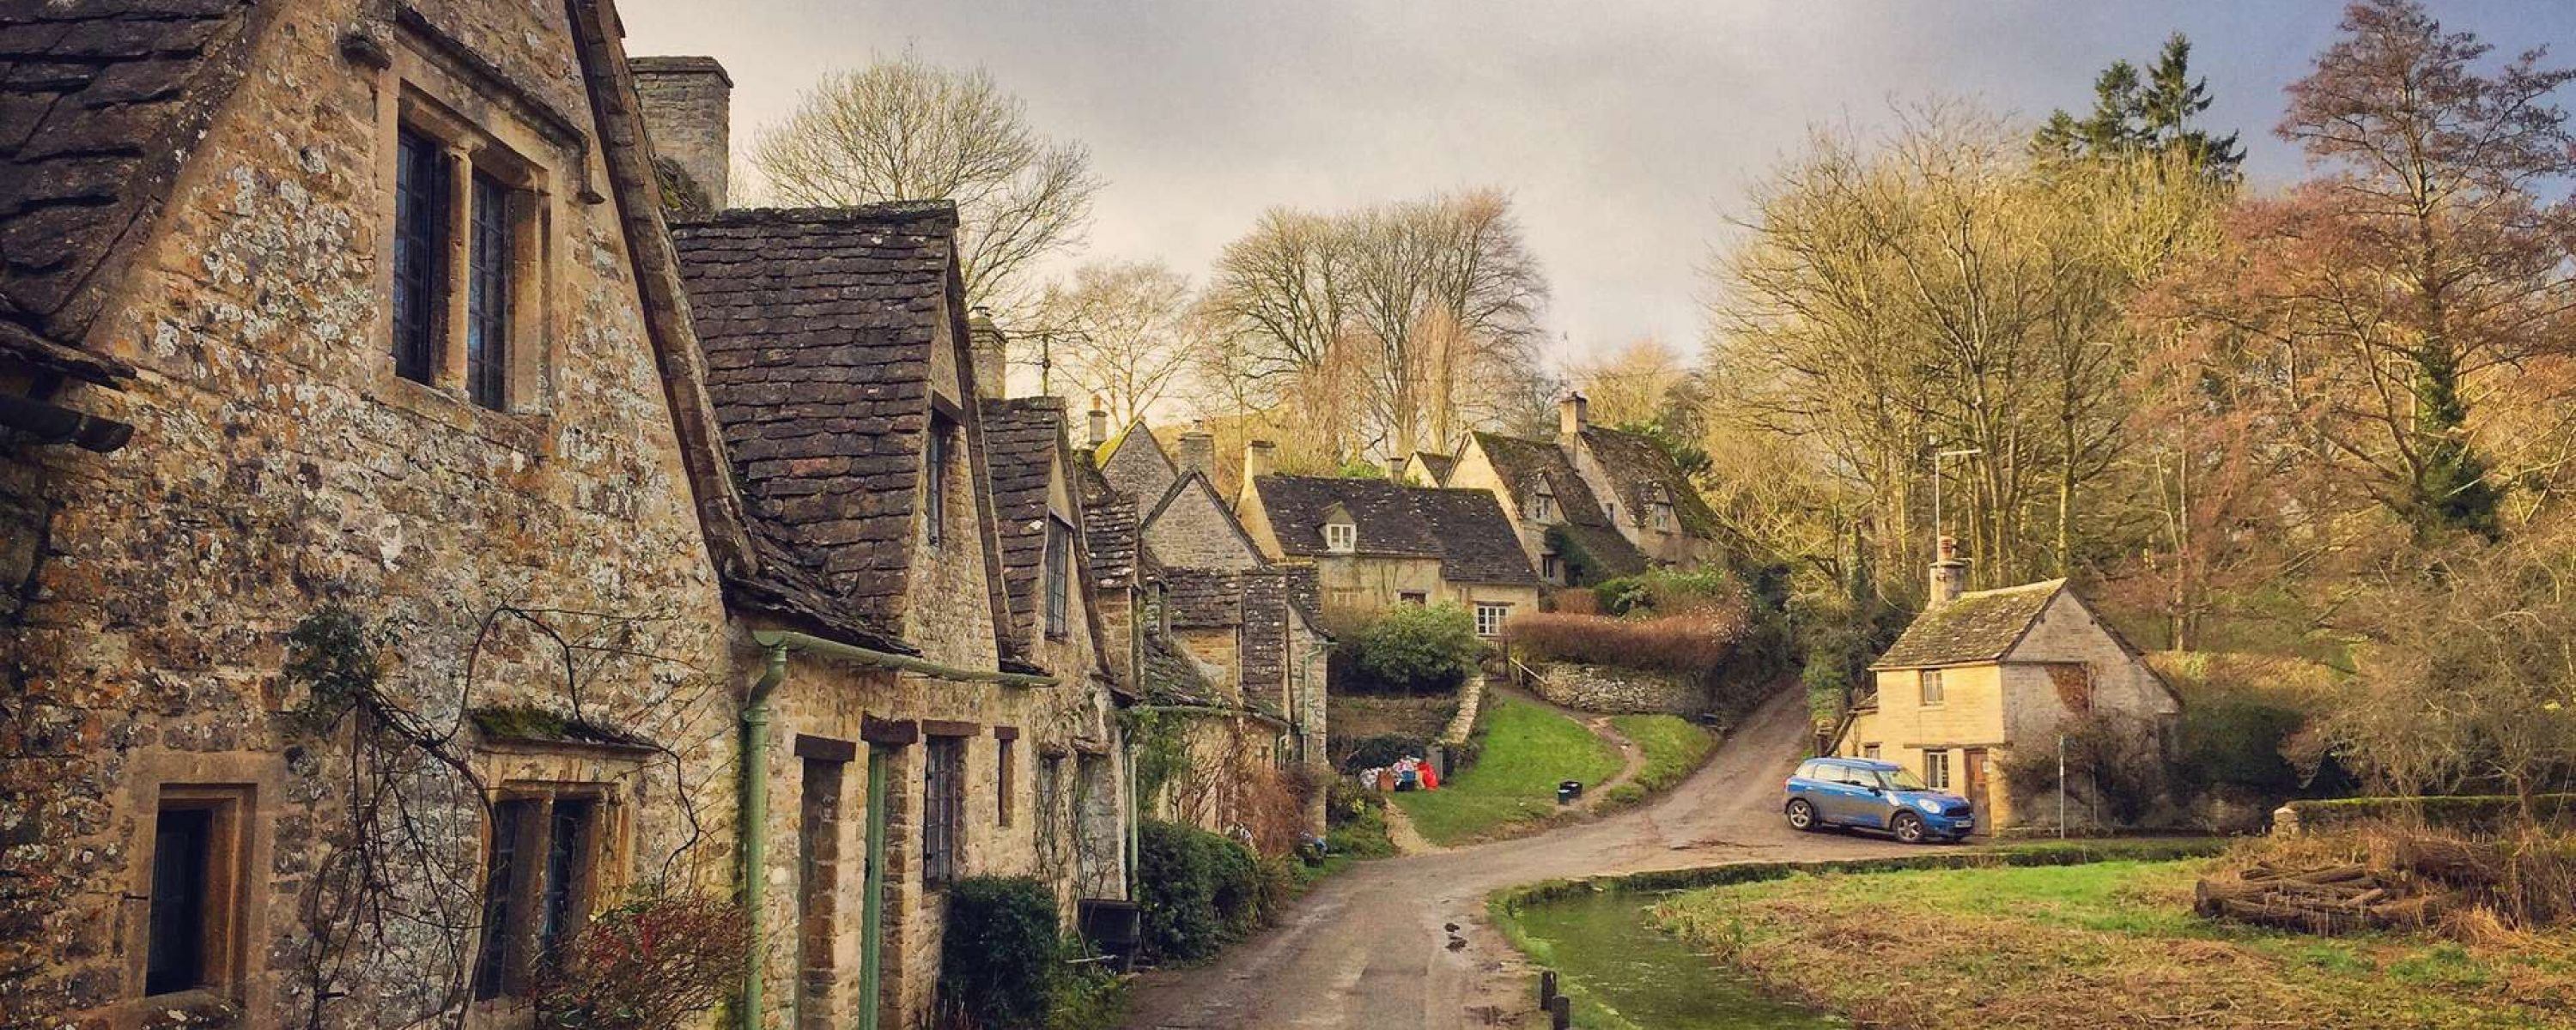 Cotswolds_on_the_road